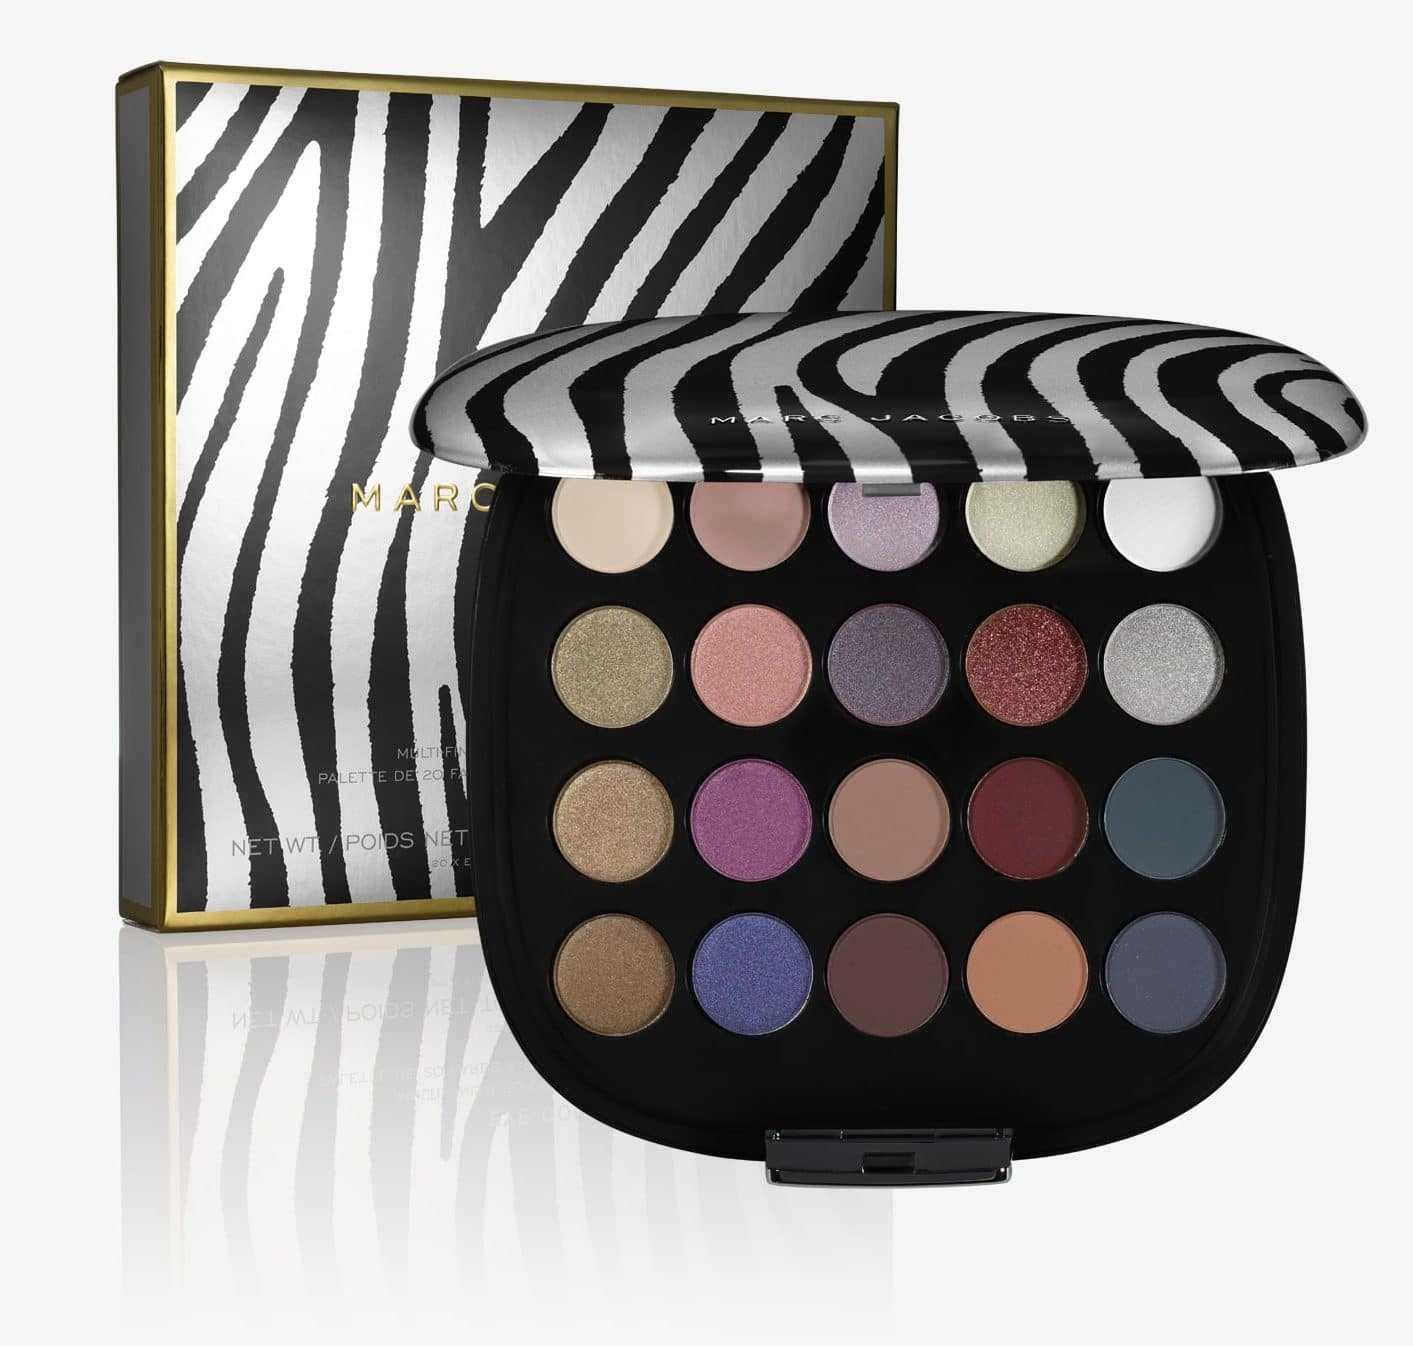 Marc Jacobs Christmas Collection, Eye-conic palette